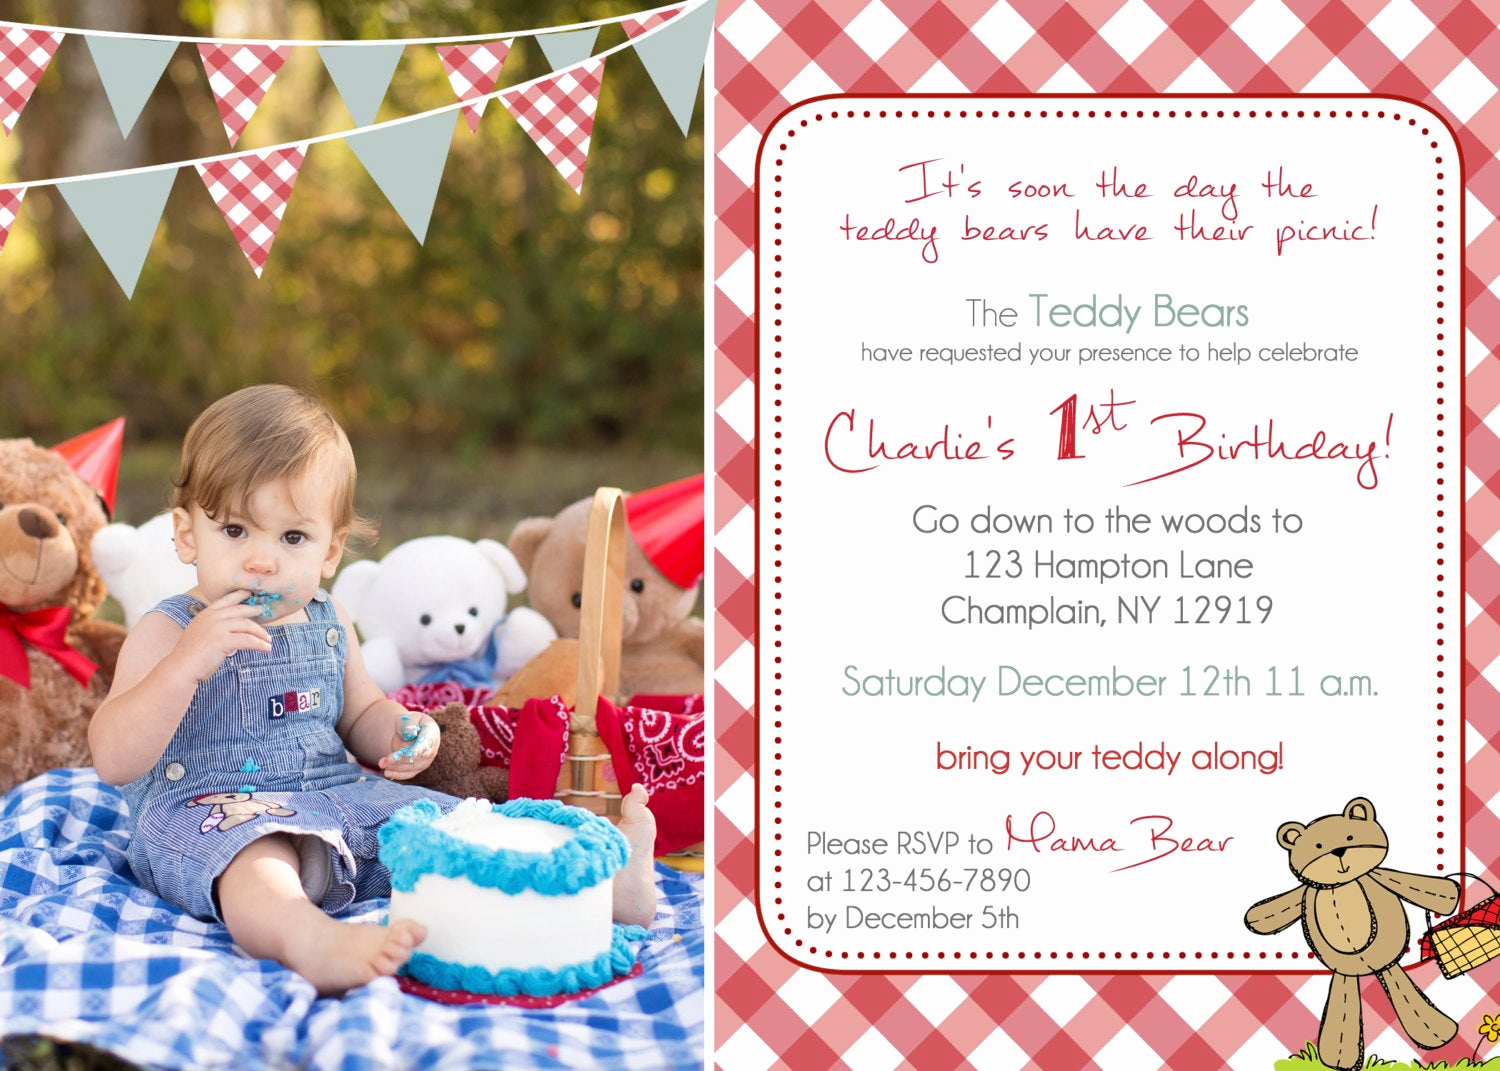 Teddy Bear Picnic Invitation New Teddy Bear Picnic Birthday Invitation You Print